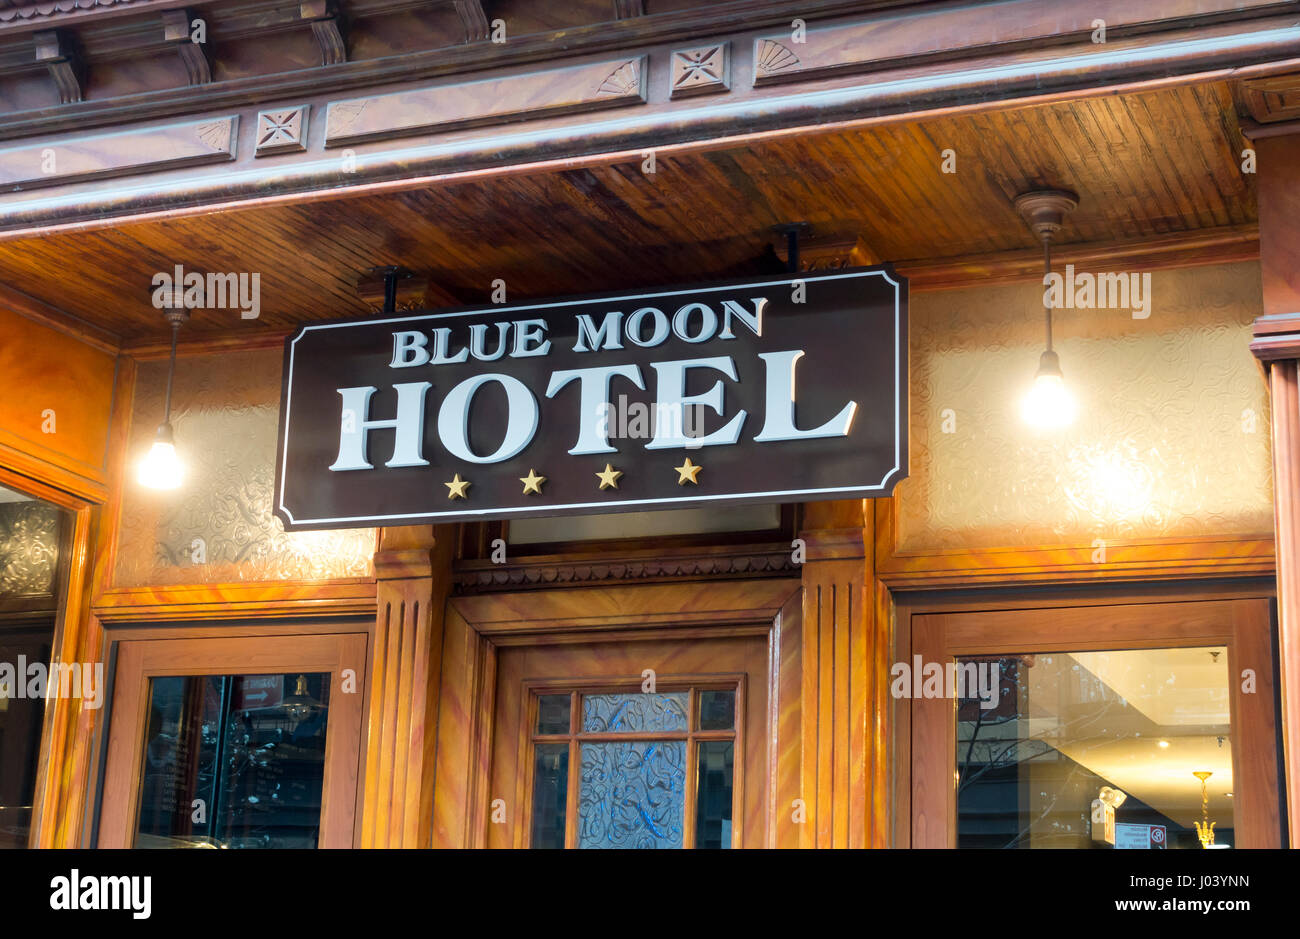 Blue Moon Boutique Hotel in the Lower East Side on Manhattan - Stock Image